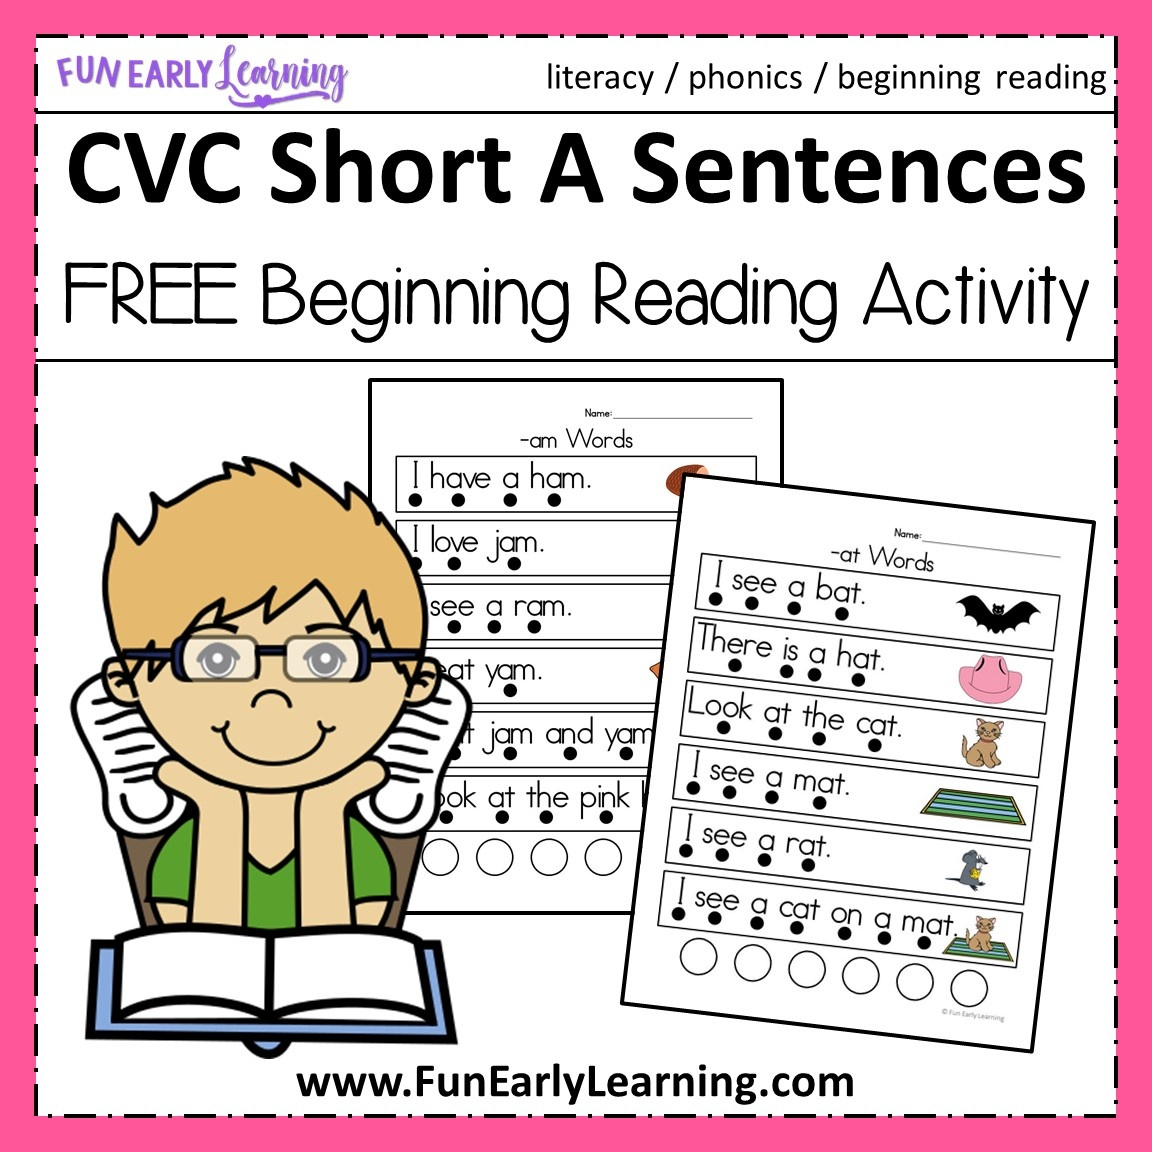 Cvc Short A Sentences - Beginning Reading And Phonemic Awareness - Free Printable Cvc Words With Pictures